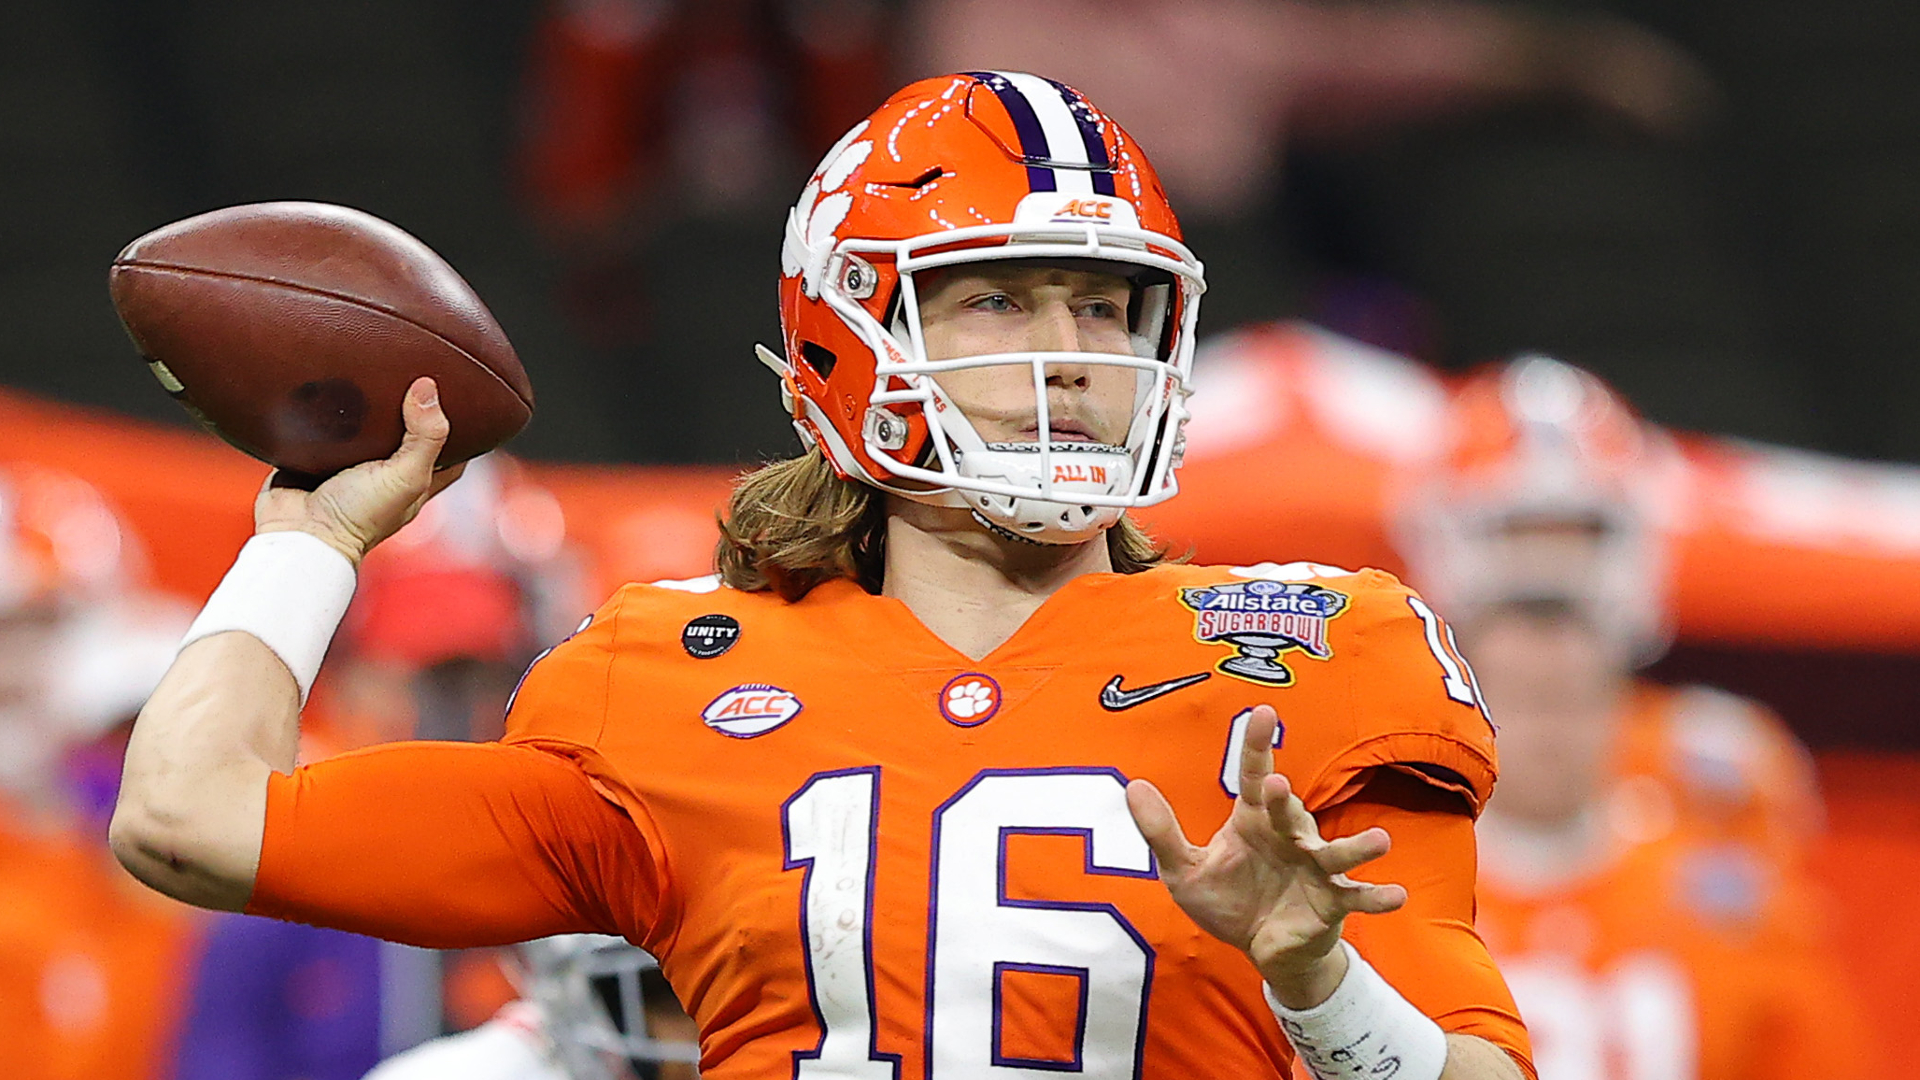 Trevor Lawrence faces one final indignity after Sugar Bowl loss: 'Poor Trevor needs to shave his 'stache' 1